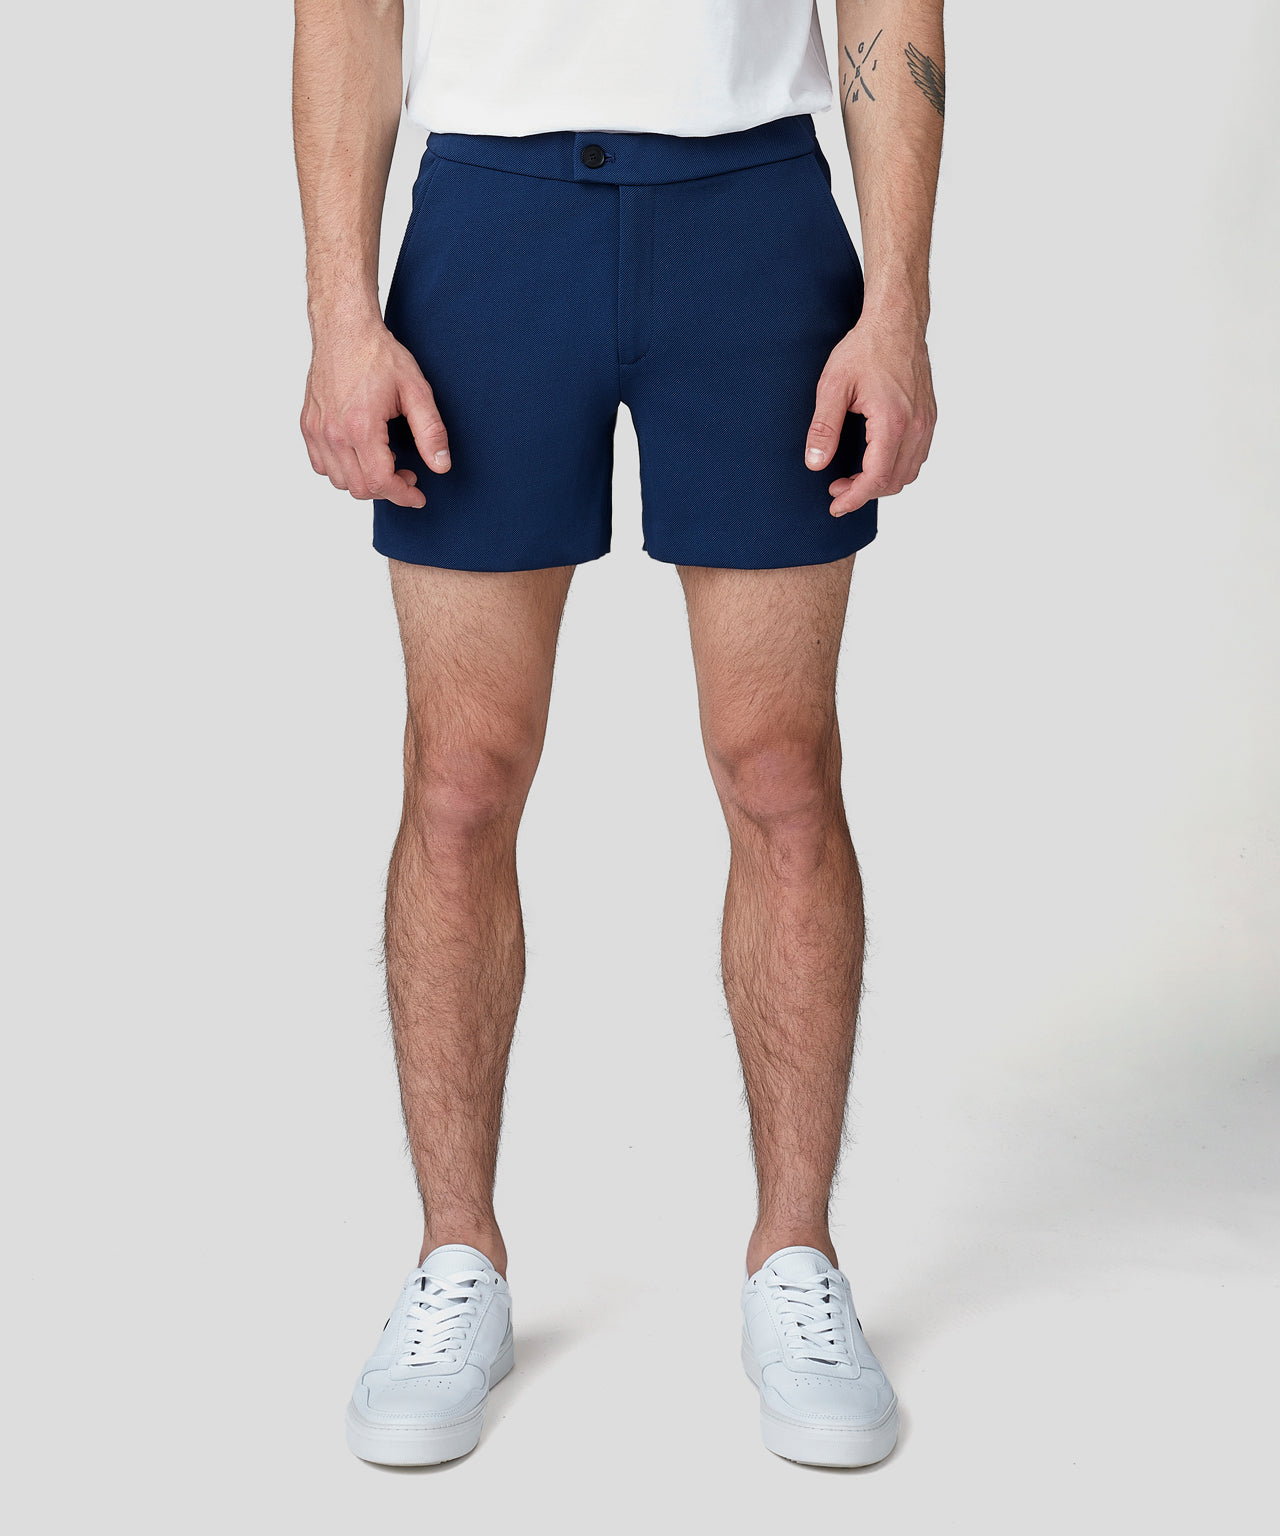 Tennis Shorts - viking blue